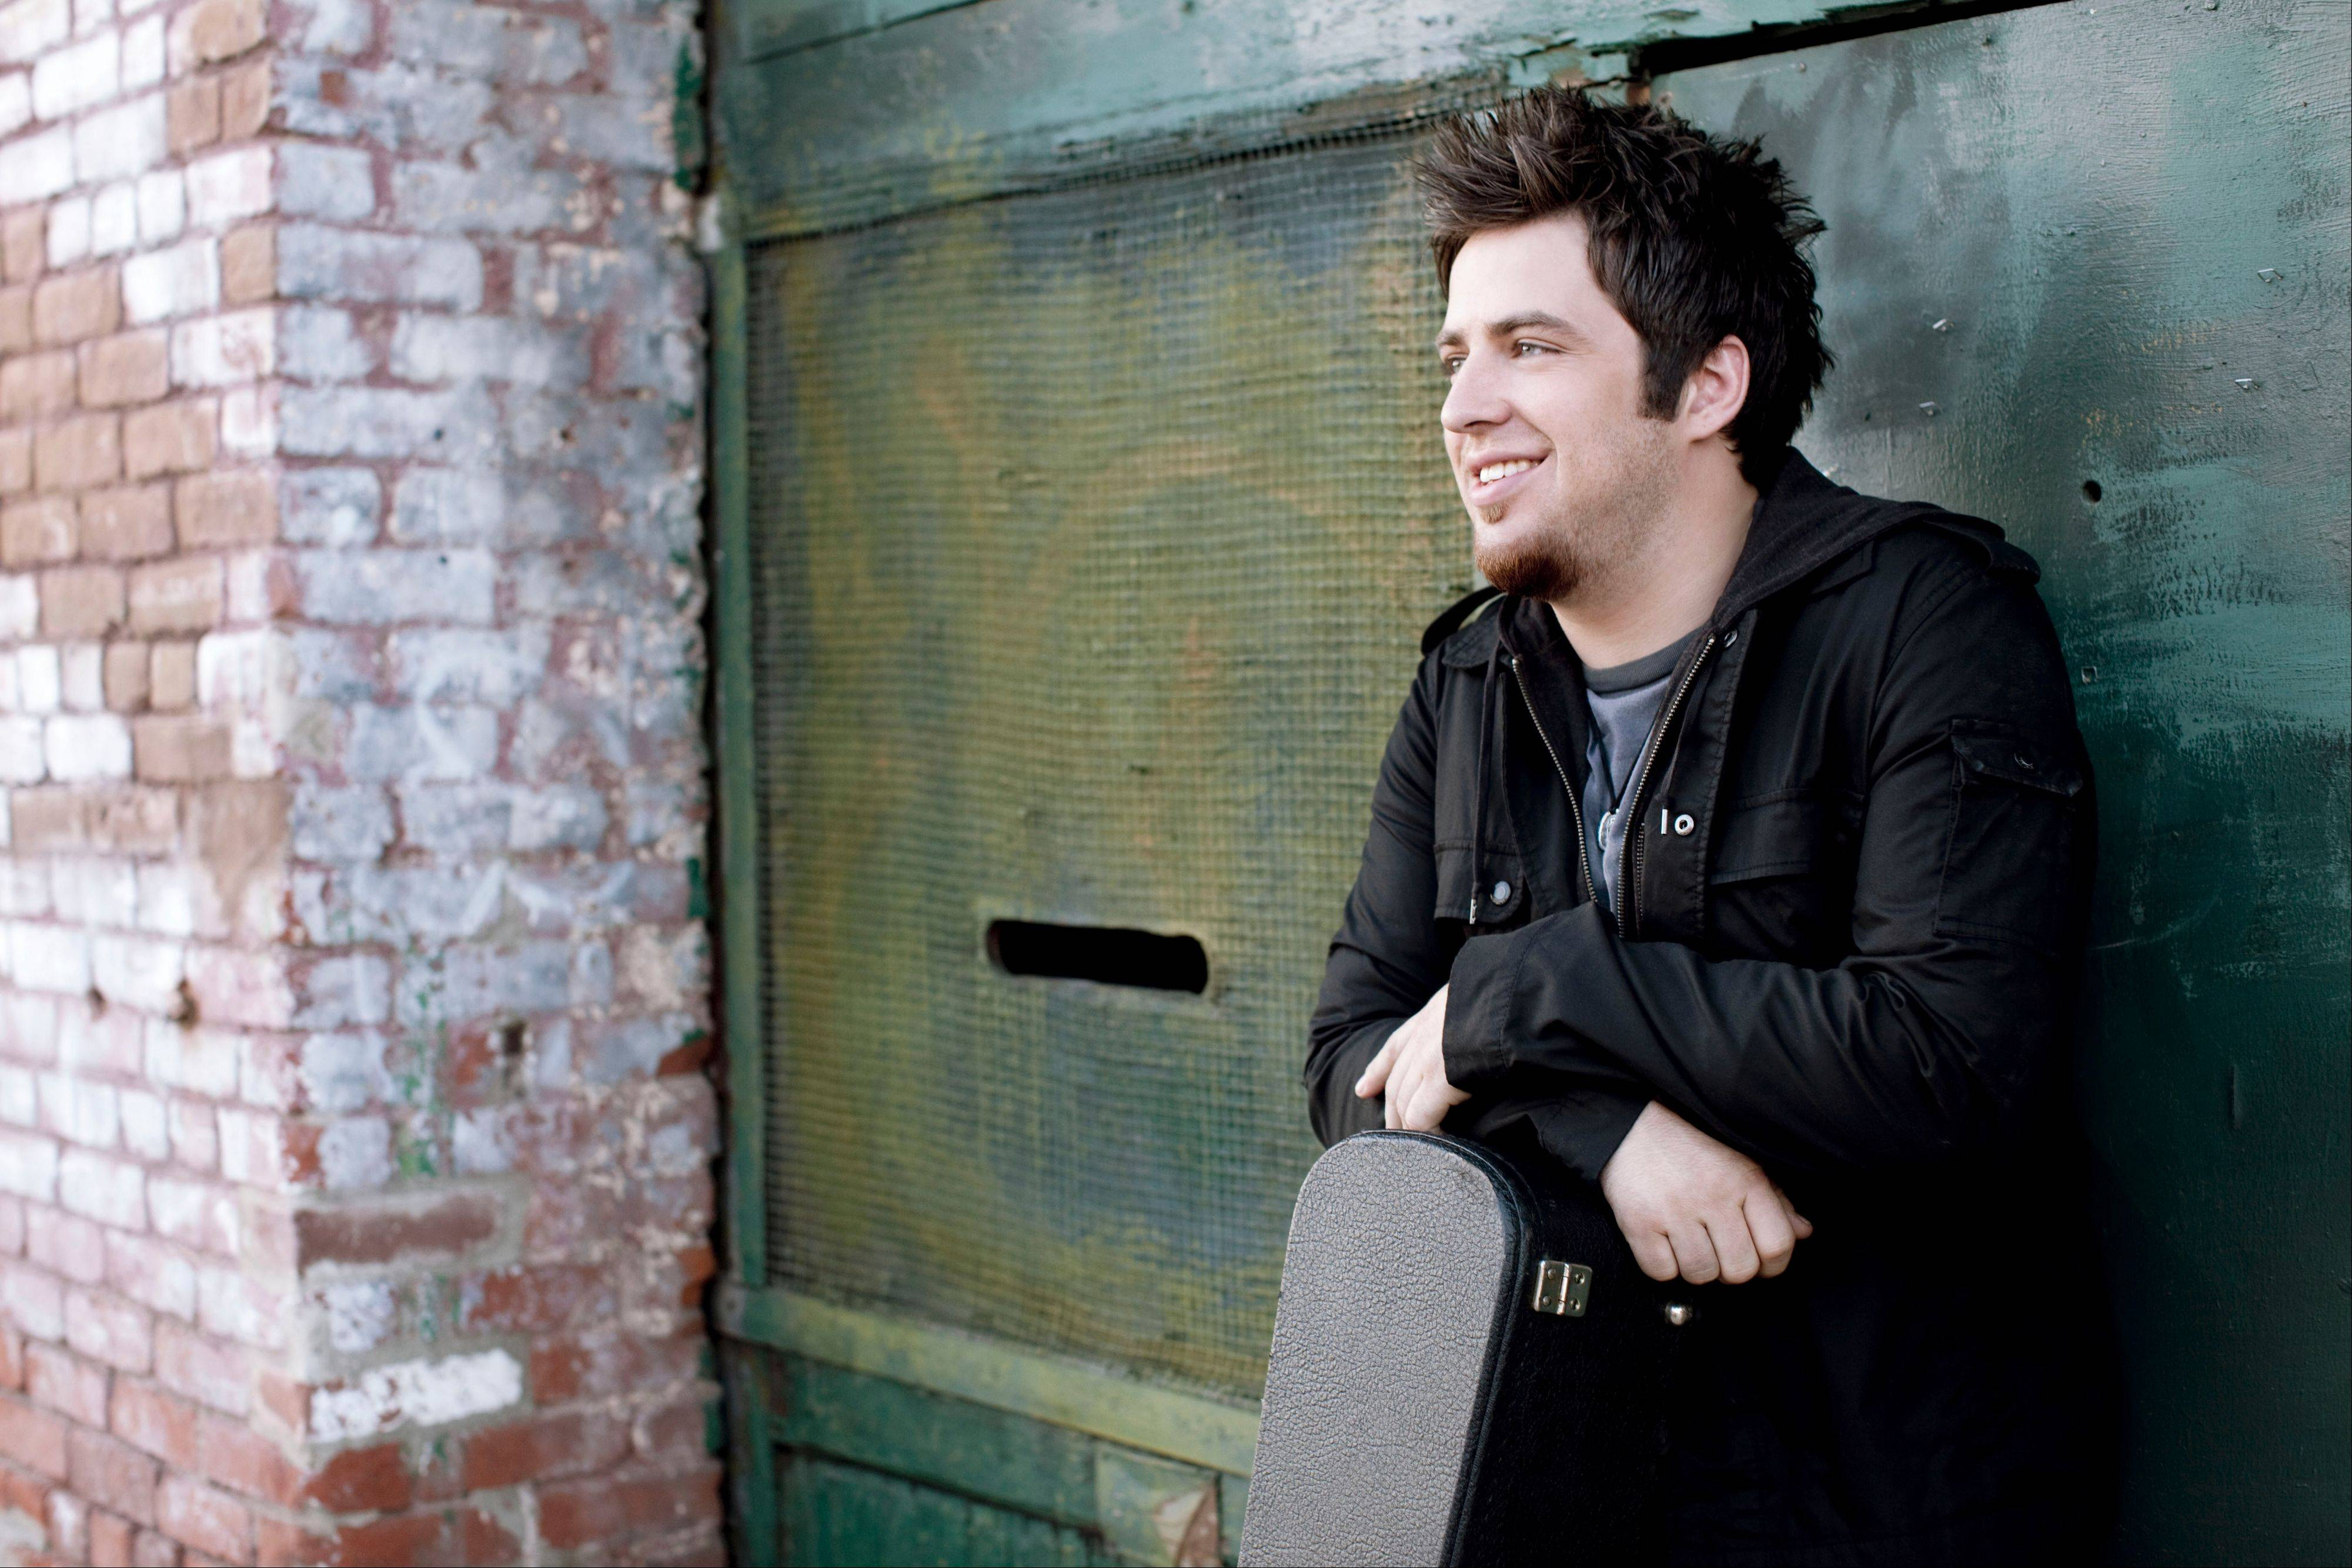 Lee DeWyze goes back to his roots with second album.